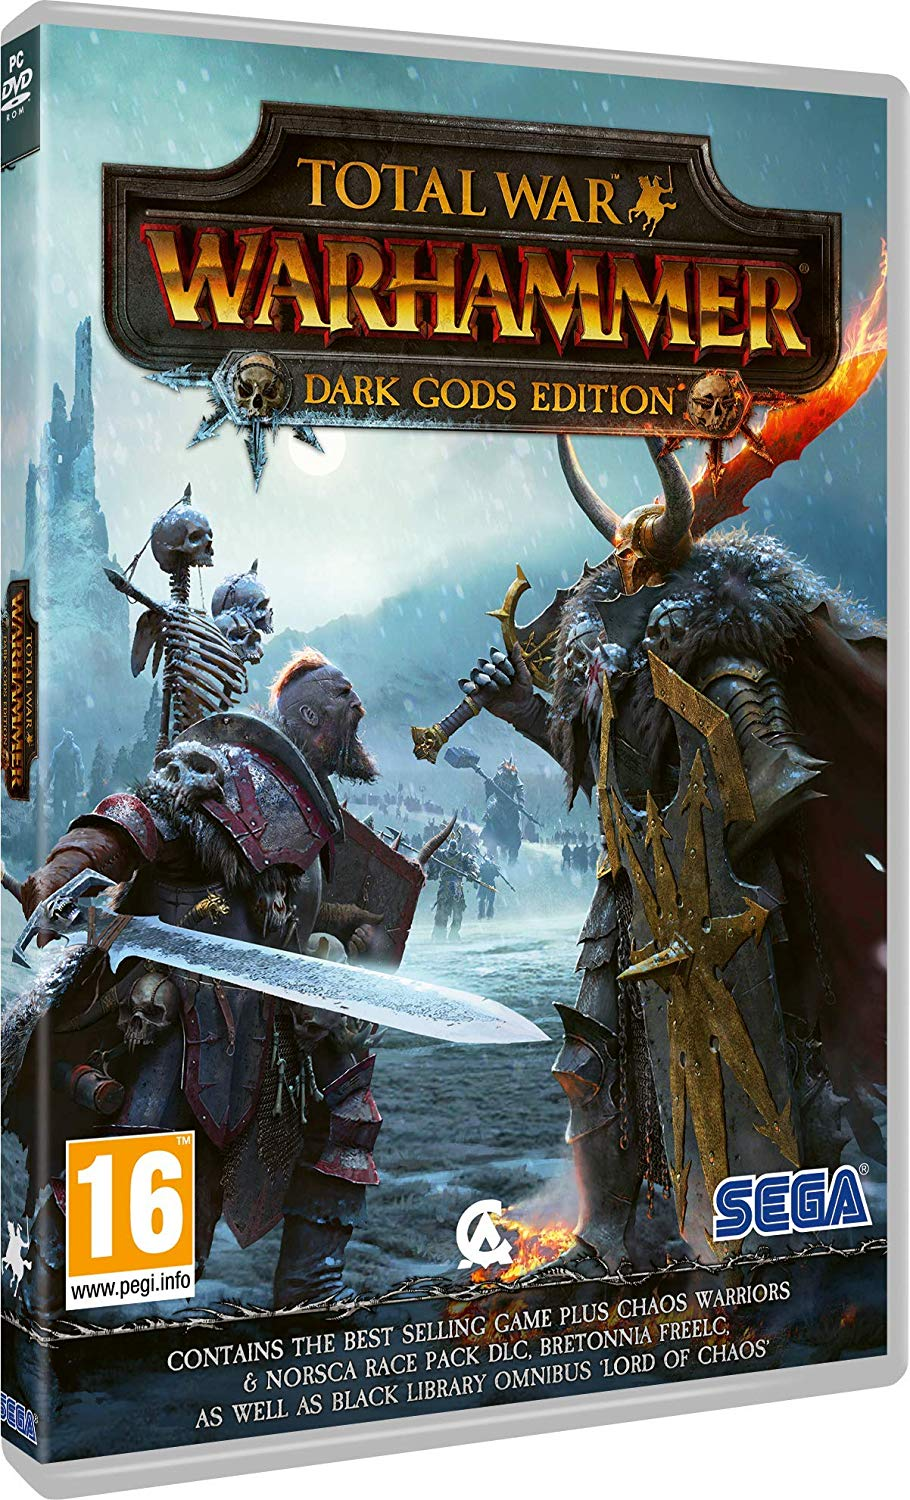 Total War Warhammer: Dark Gods Edition - PC